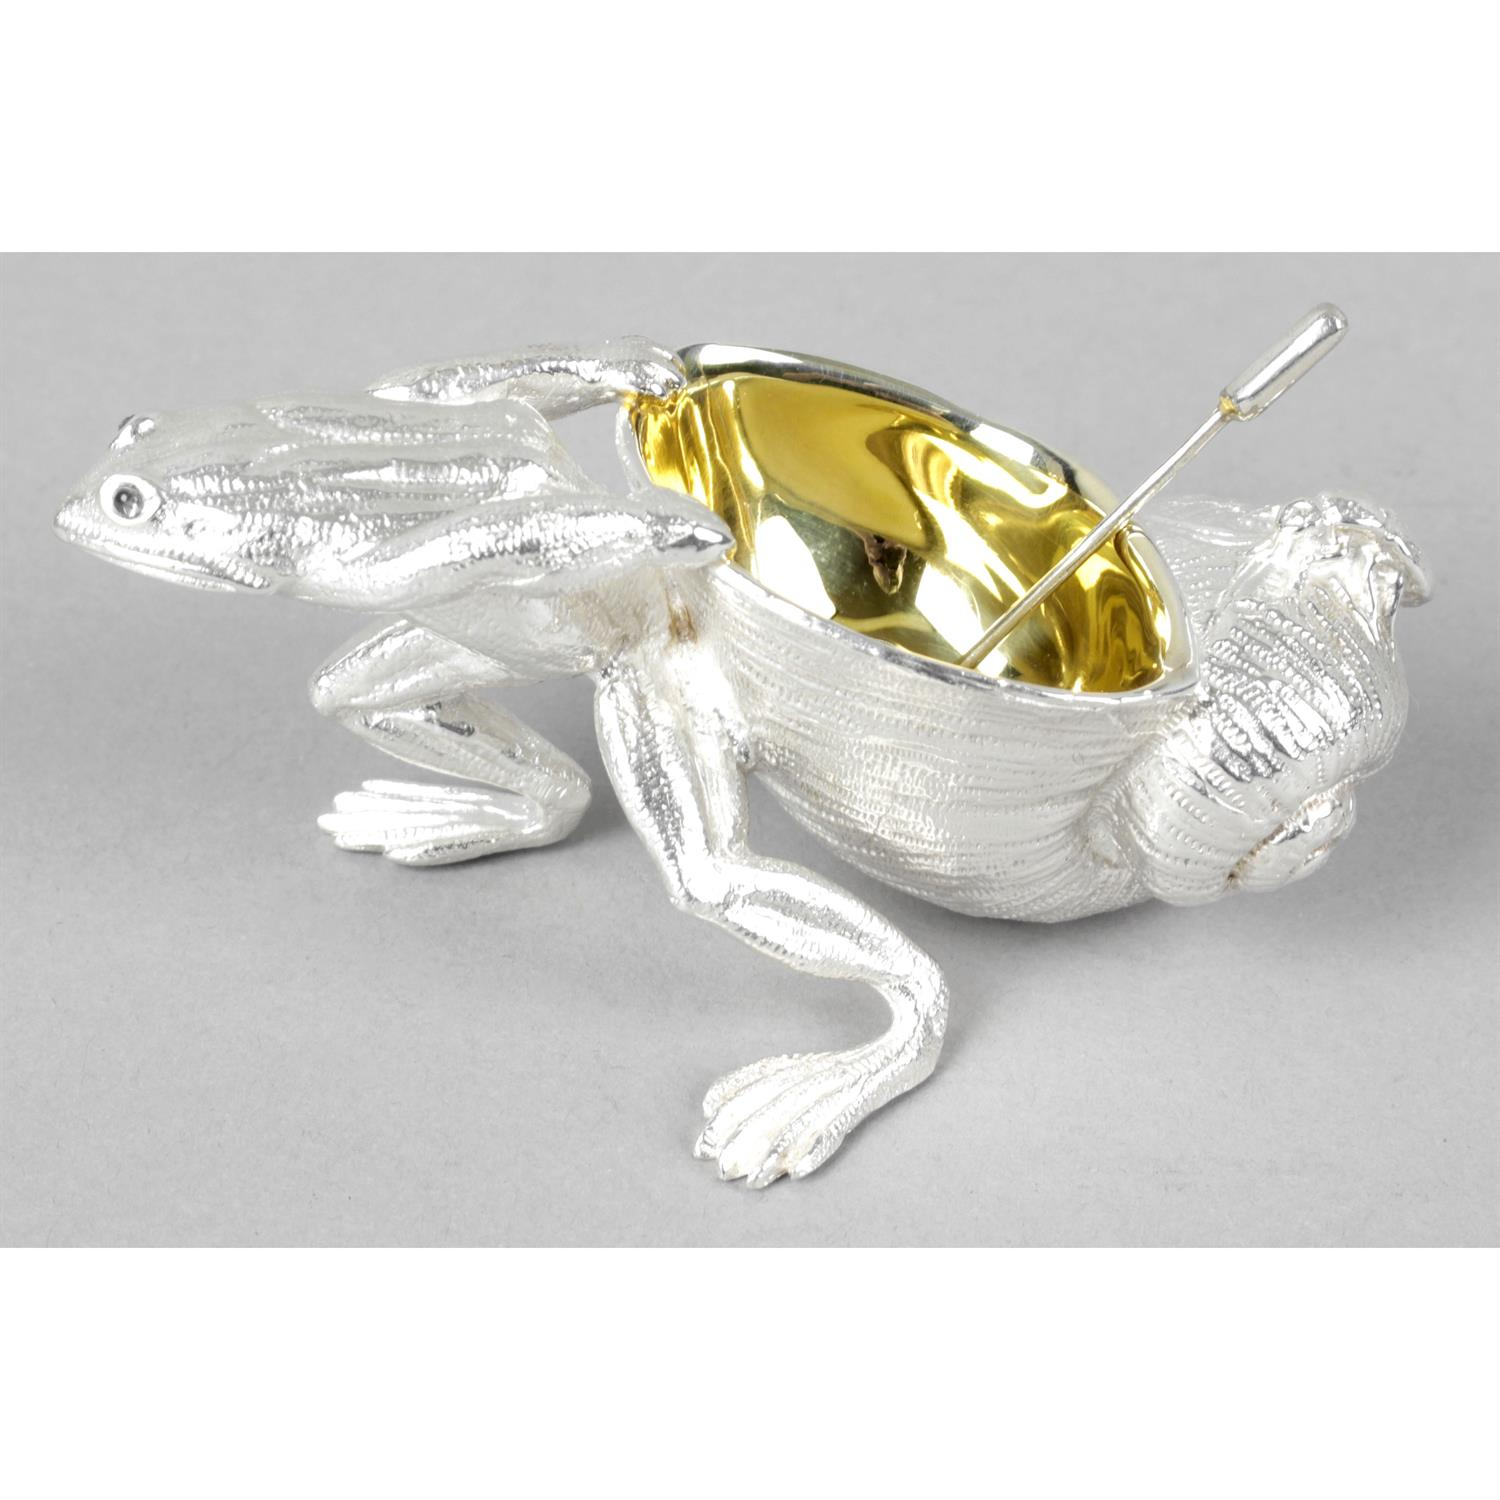 A novelty silver open salt modelled as a frog and shell.